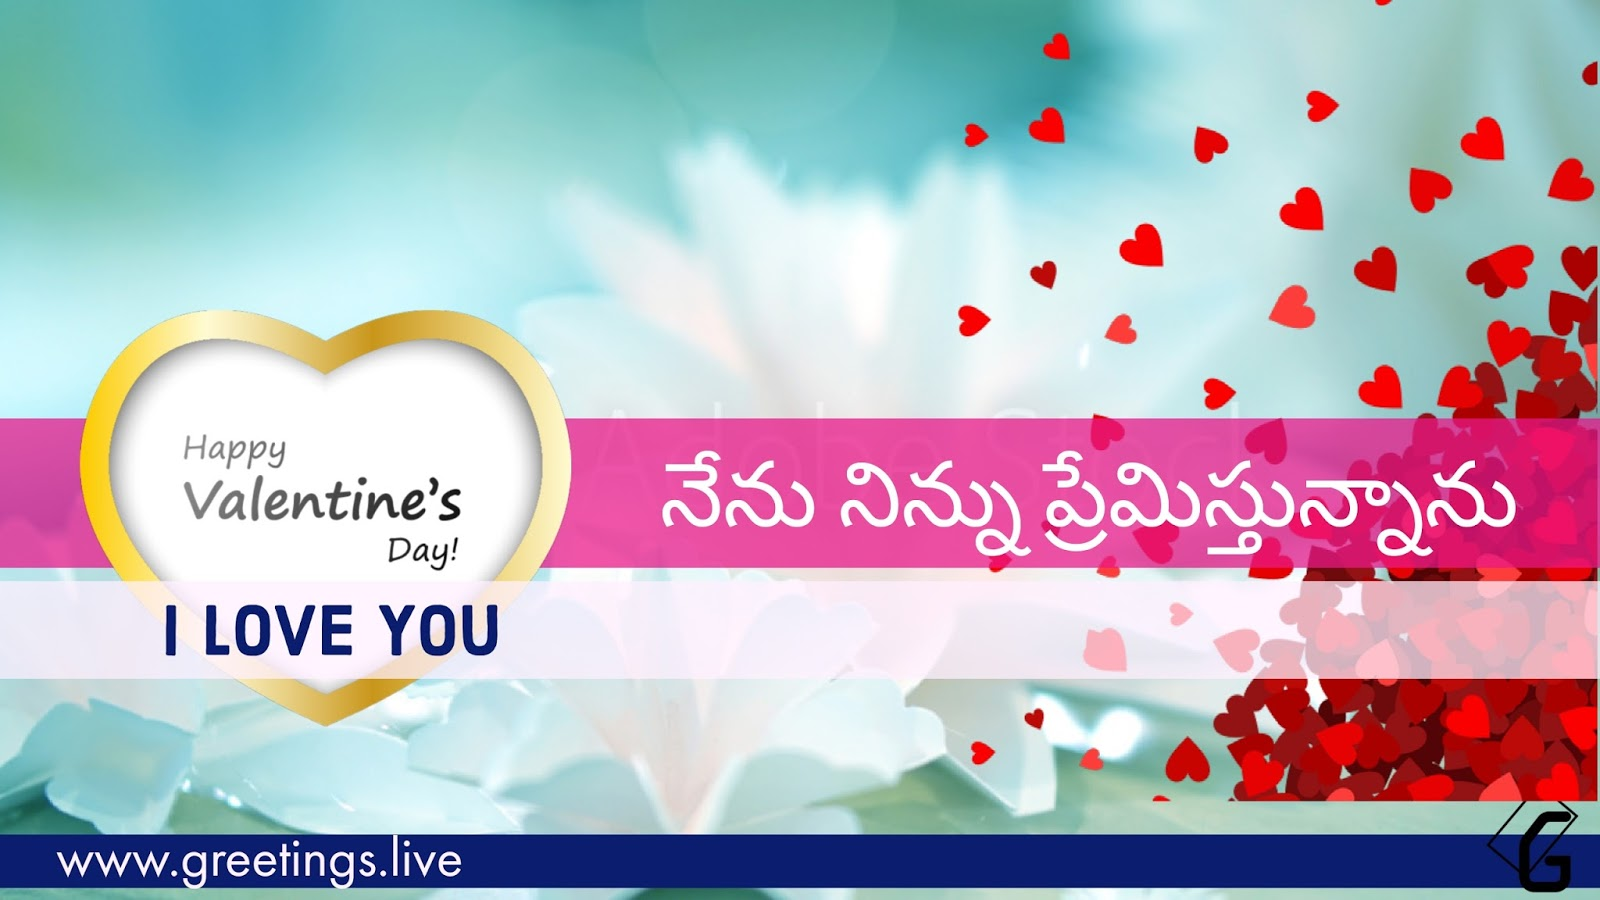 Greetingsve hd images love smile birthday wishes free download beautiful decorated love proposal greetings in telugu language hd quality image kristyandbryce Image collections